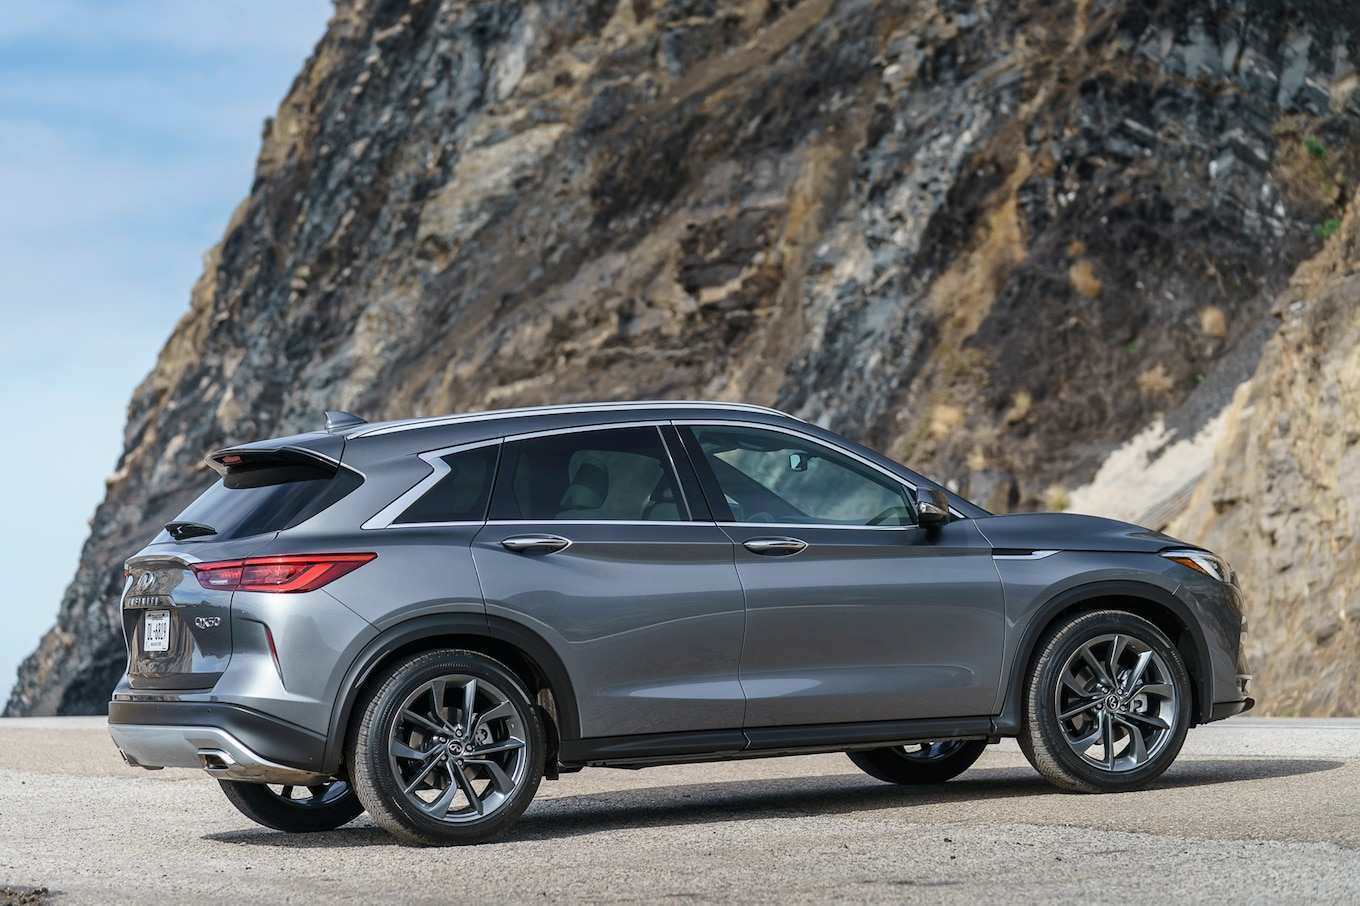 69 Best Review 2019 Infiniti Qx50 Redesign New Concept by 2019 Infiniti Qx50 Redesign